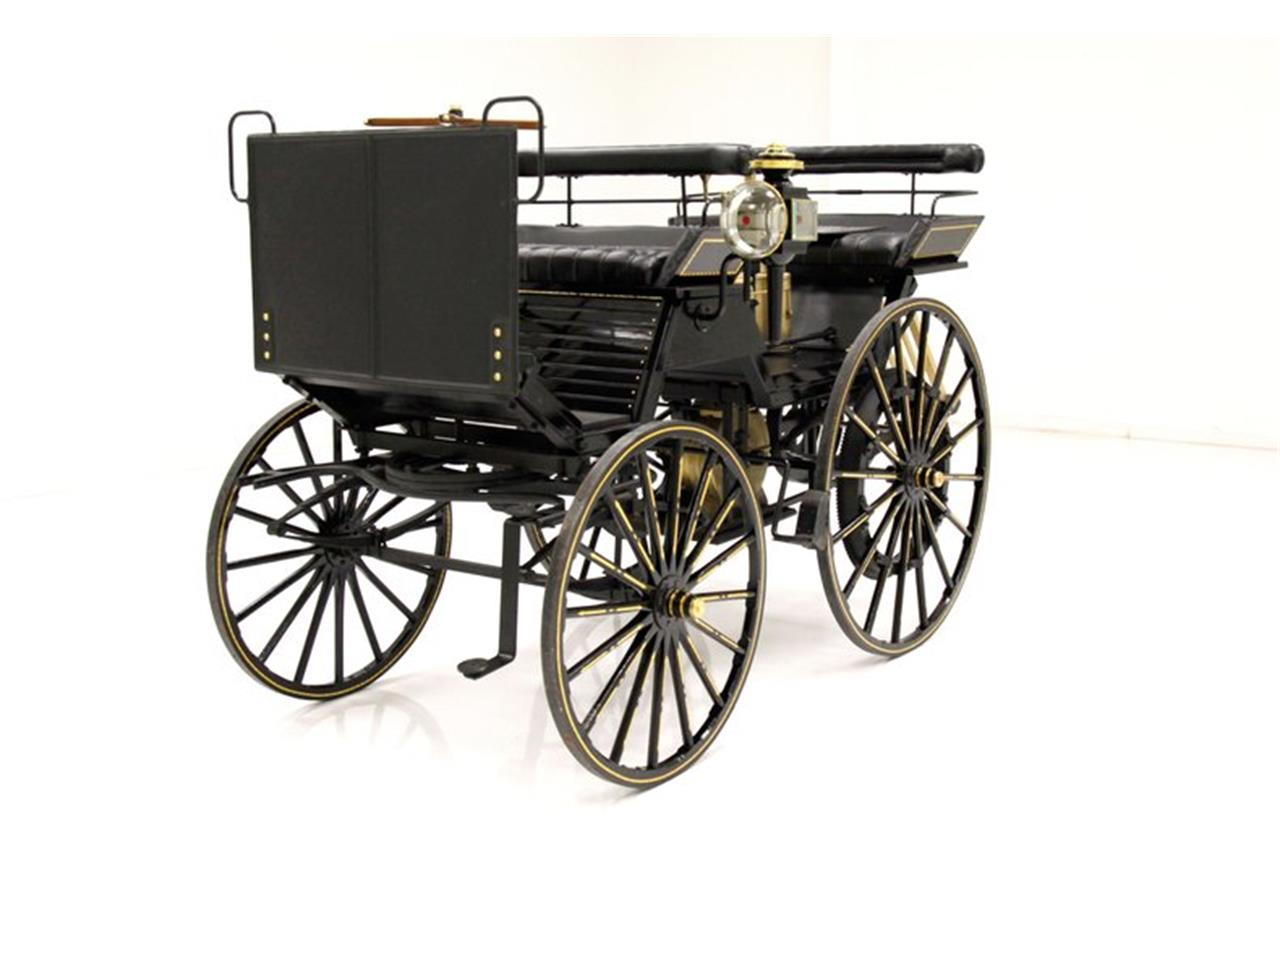 1890 Daimler Automobile (CC-1390653) for sale in Morgantown, Pennsylvania